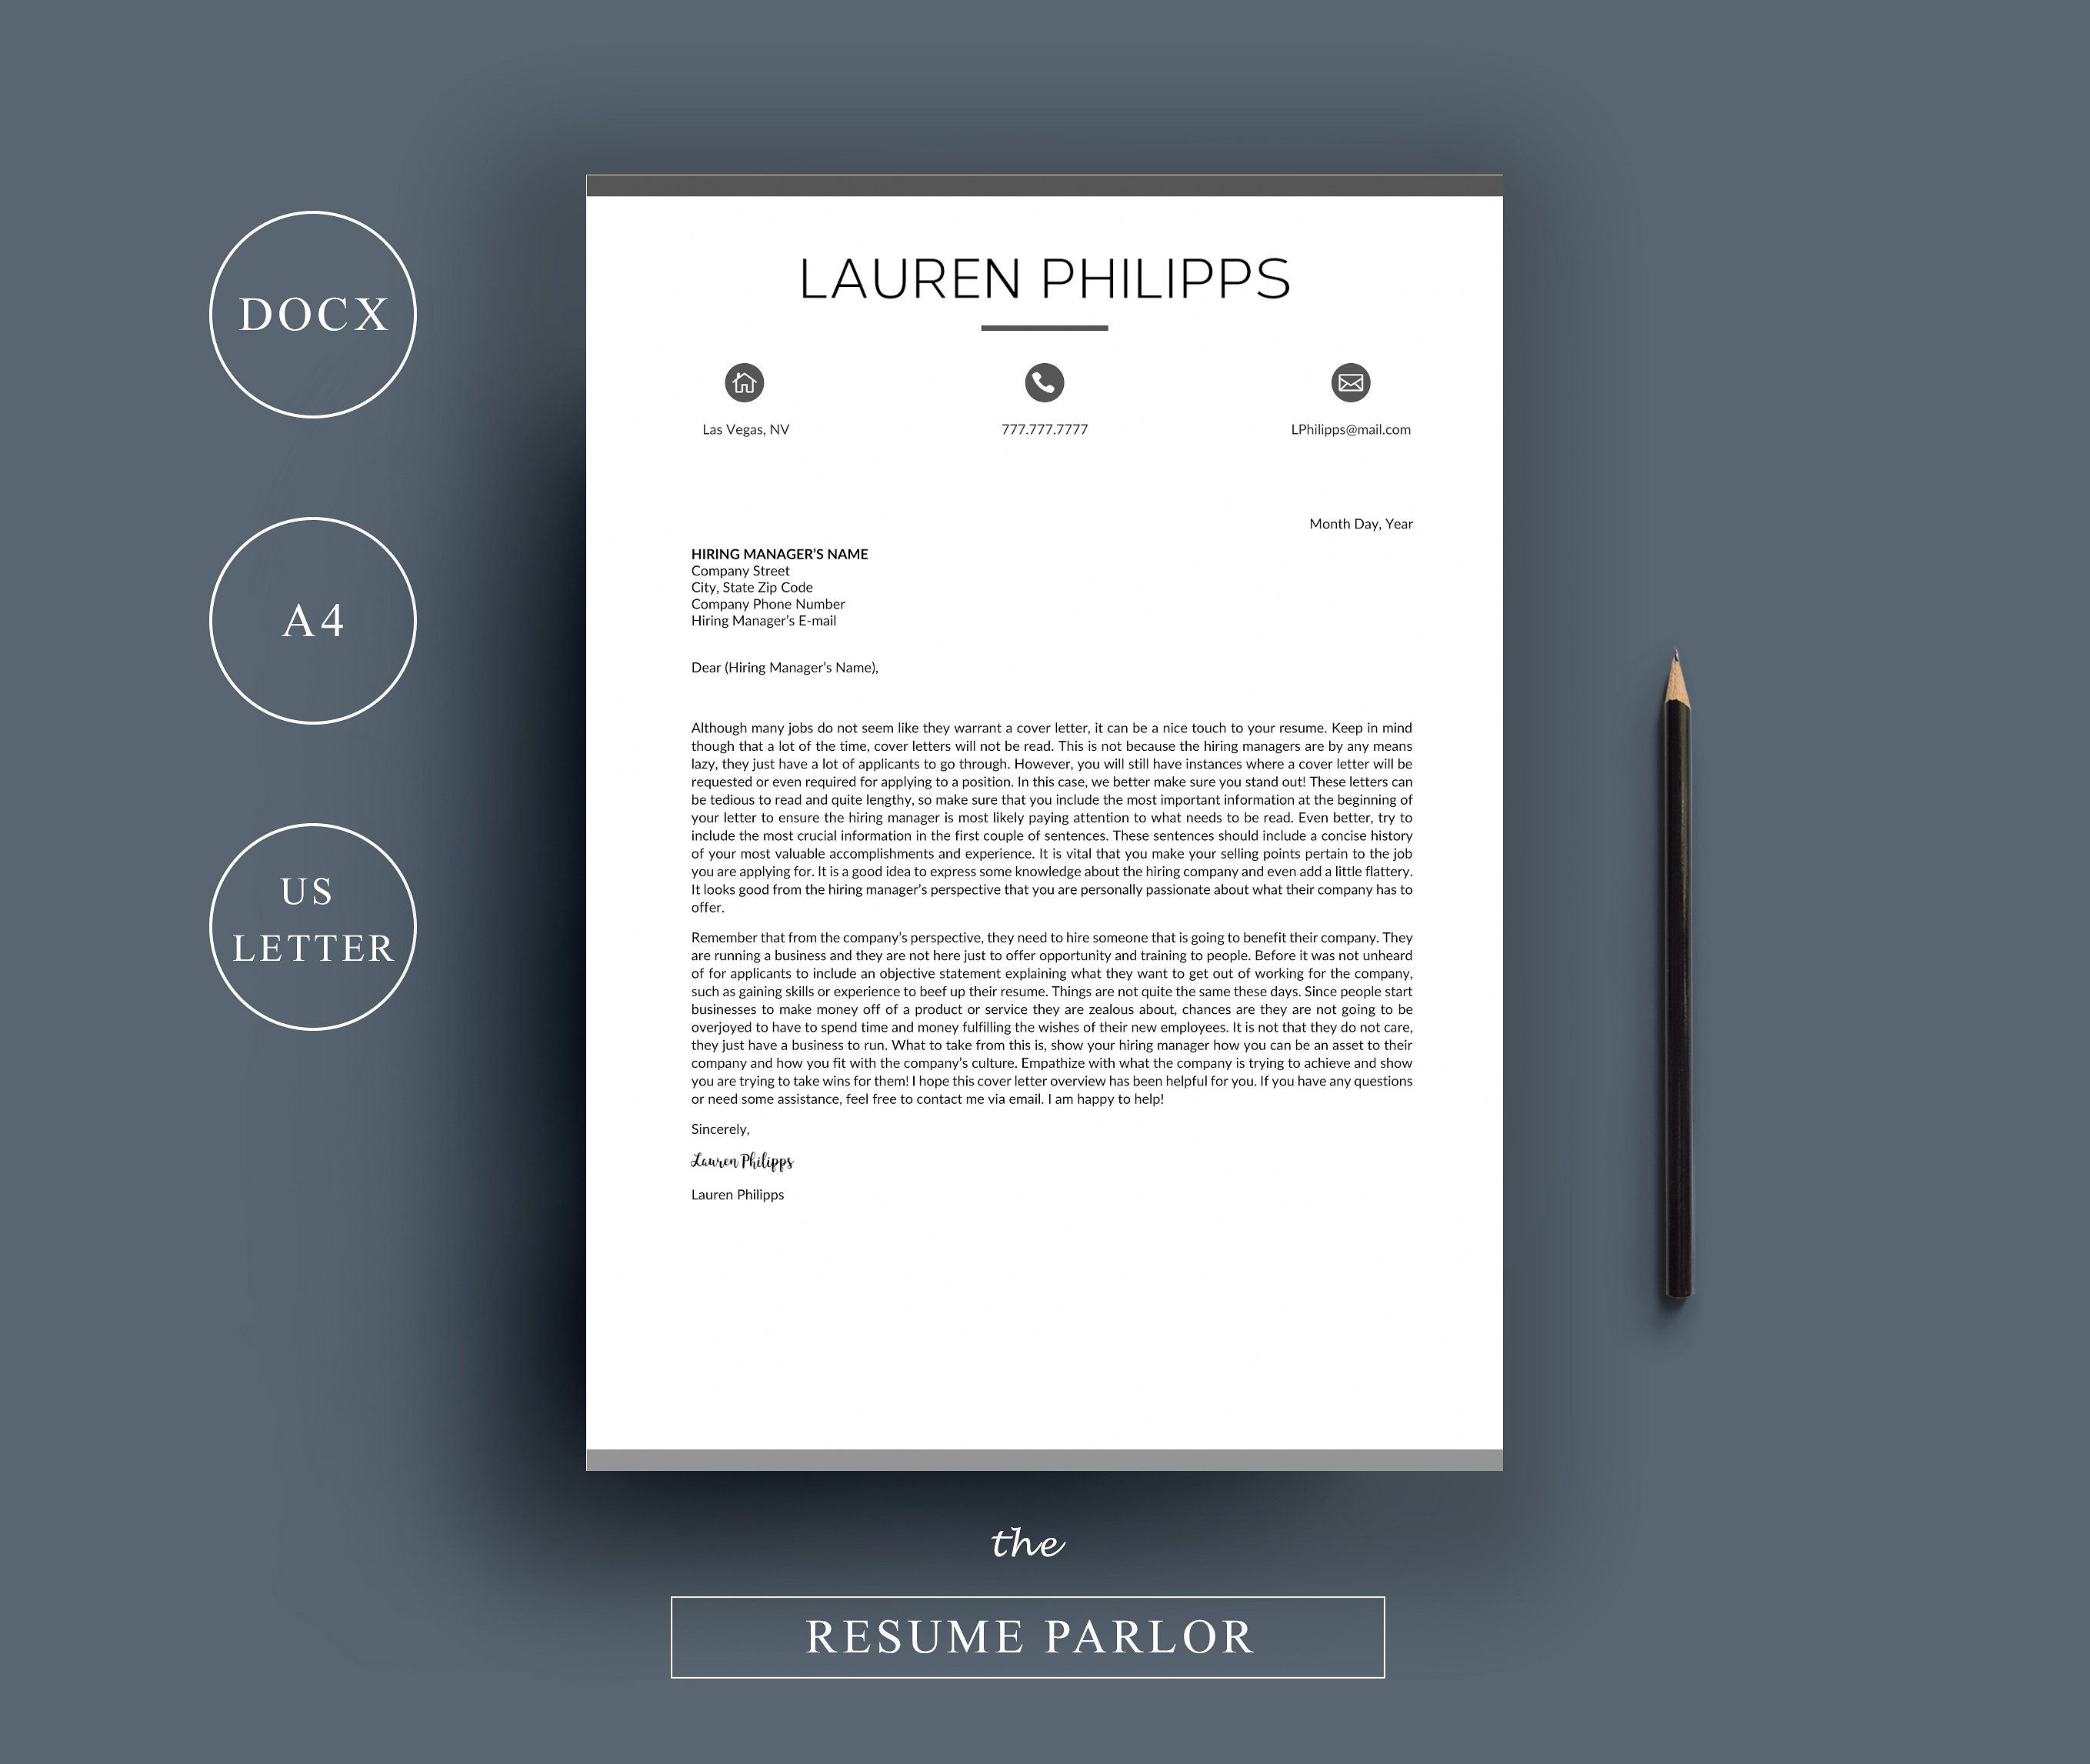 Resume 4 Page A4 US Letter #Page#References#Format#Cover